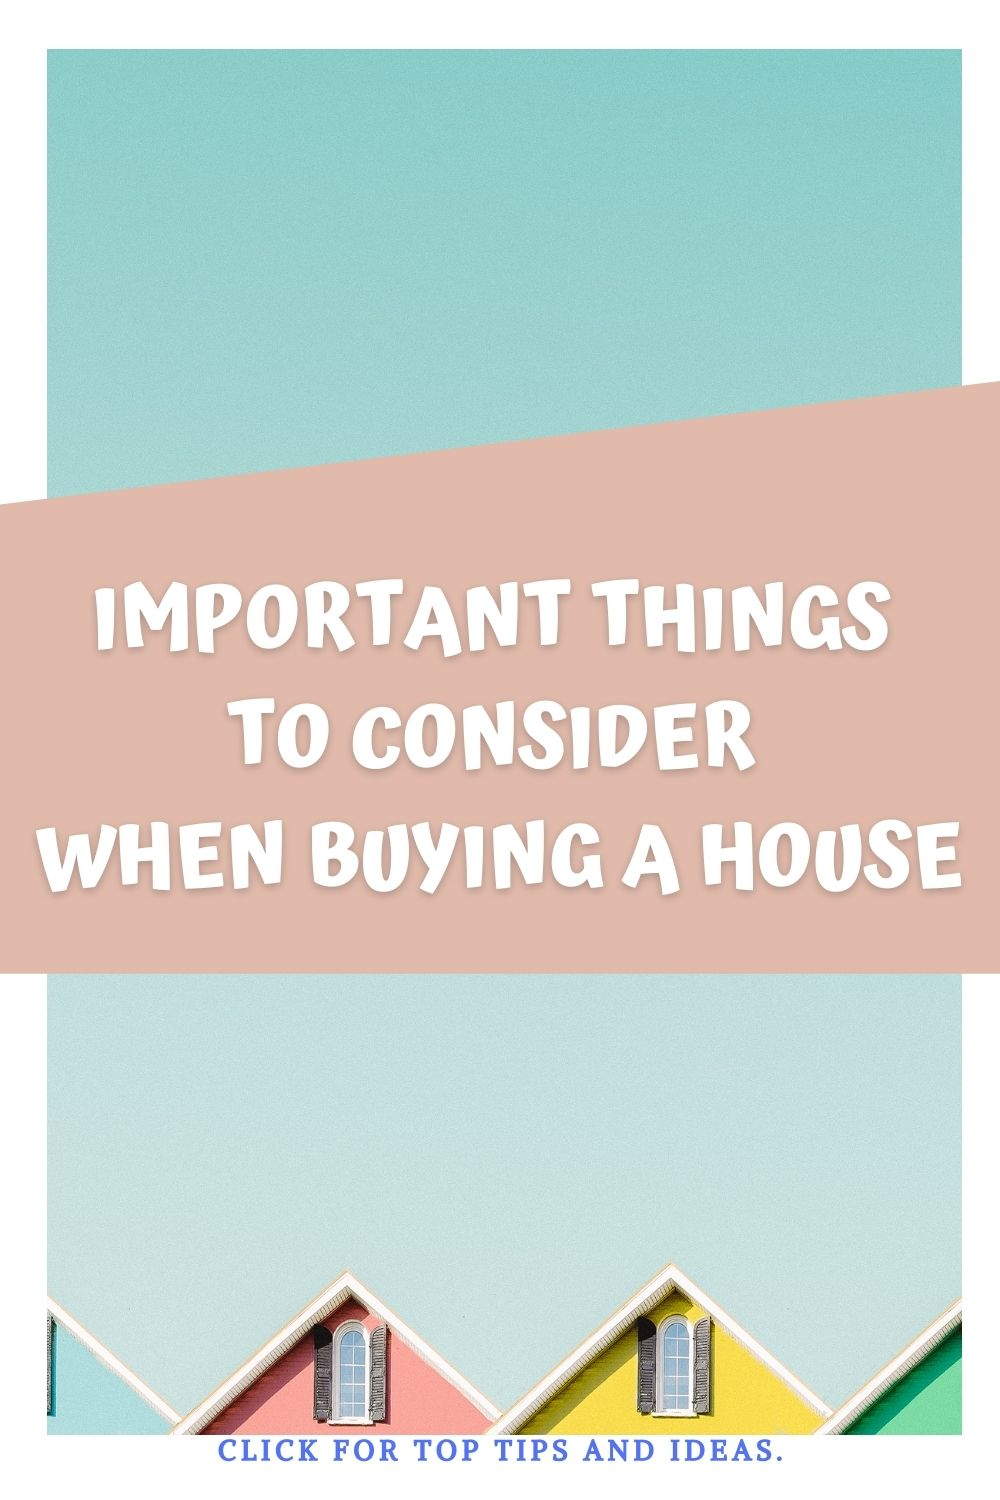 7 Important Things to Consider When Buying a House